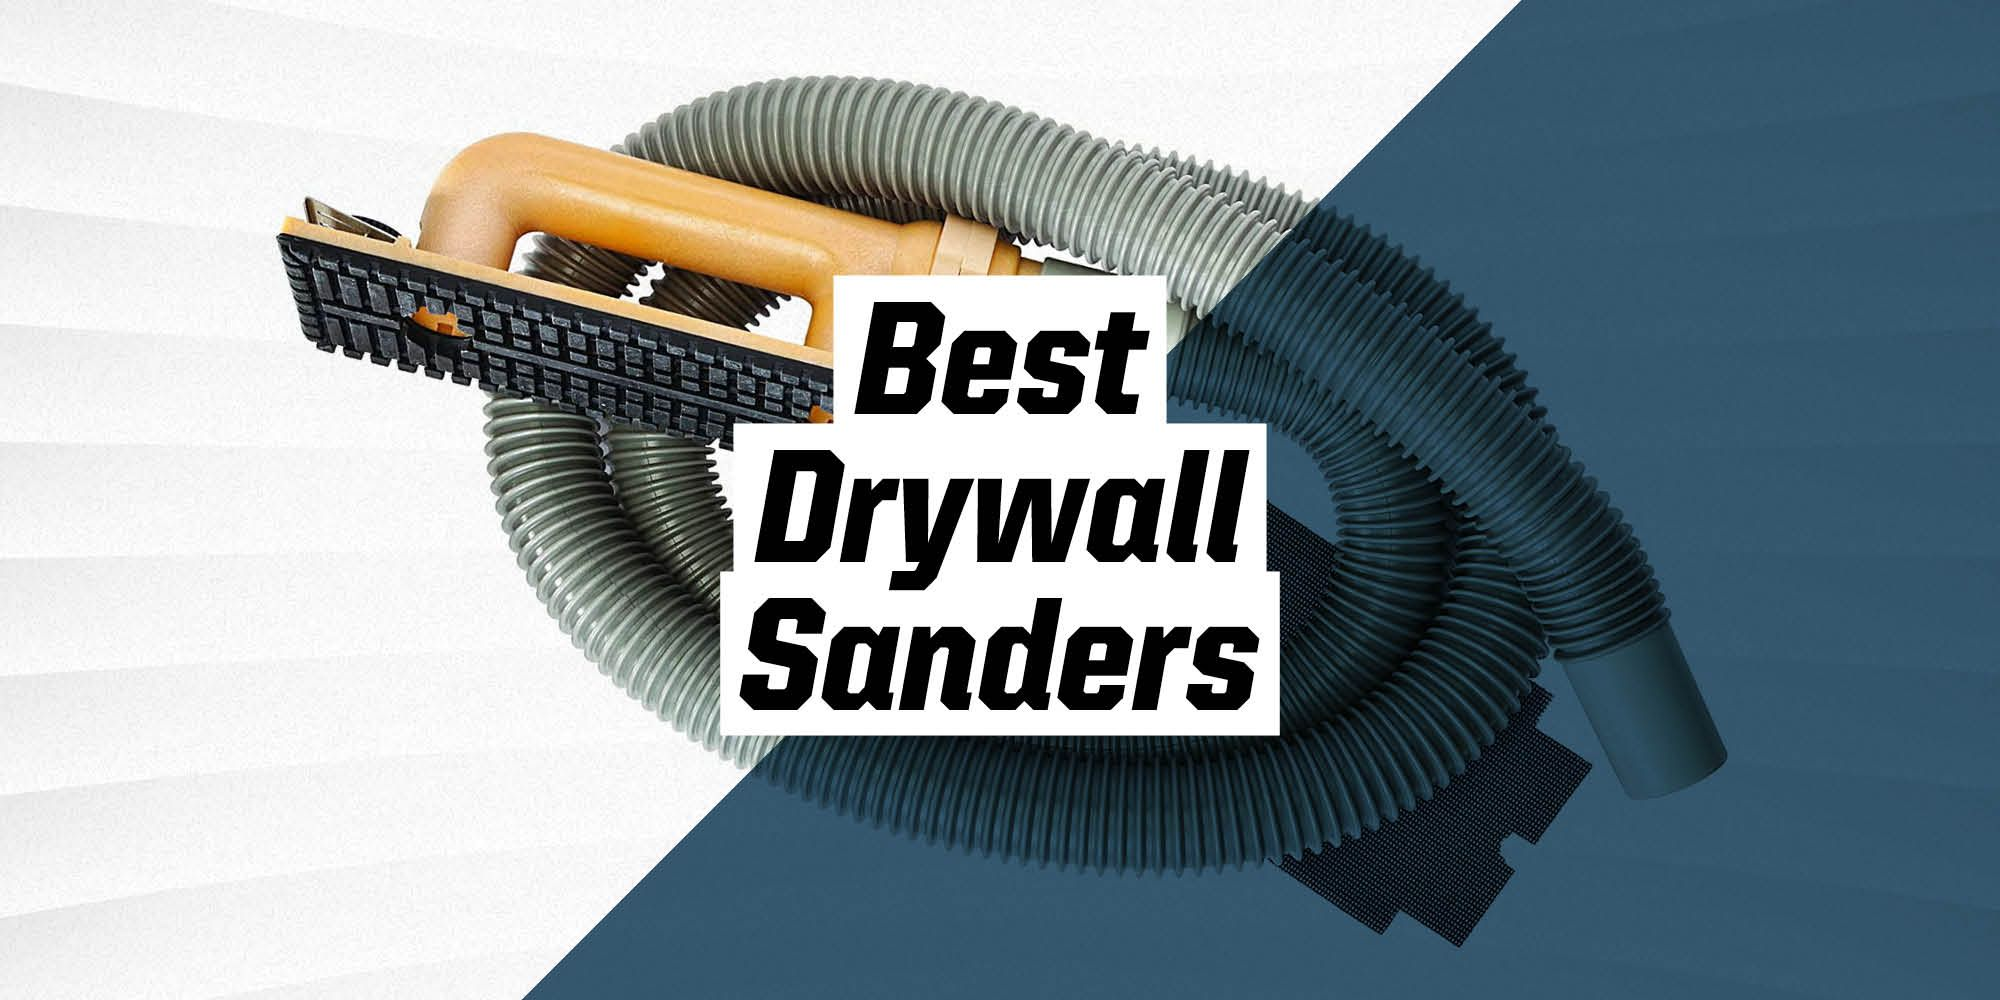 The Best Drywall Sanders for Amateurs and Professionals